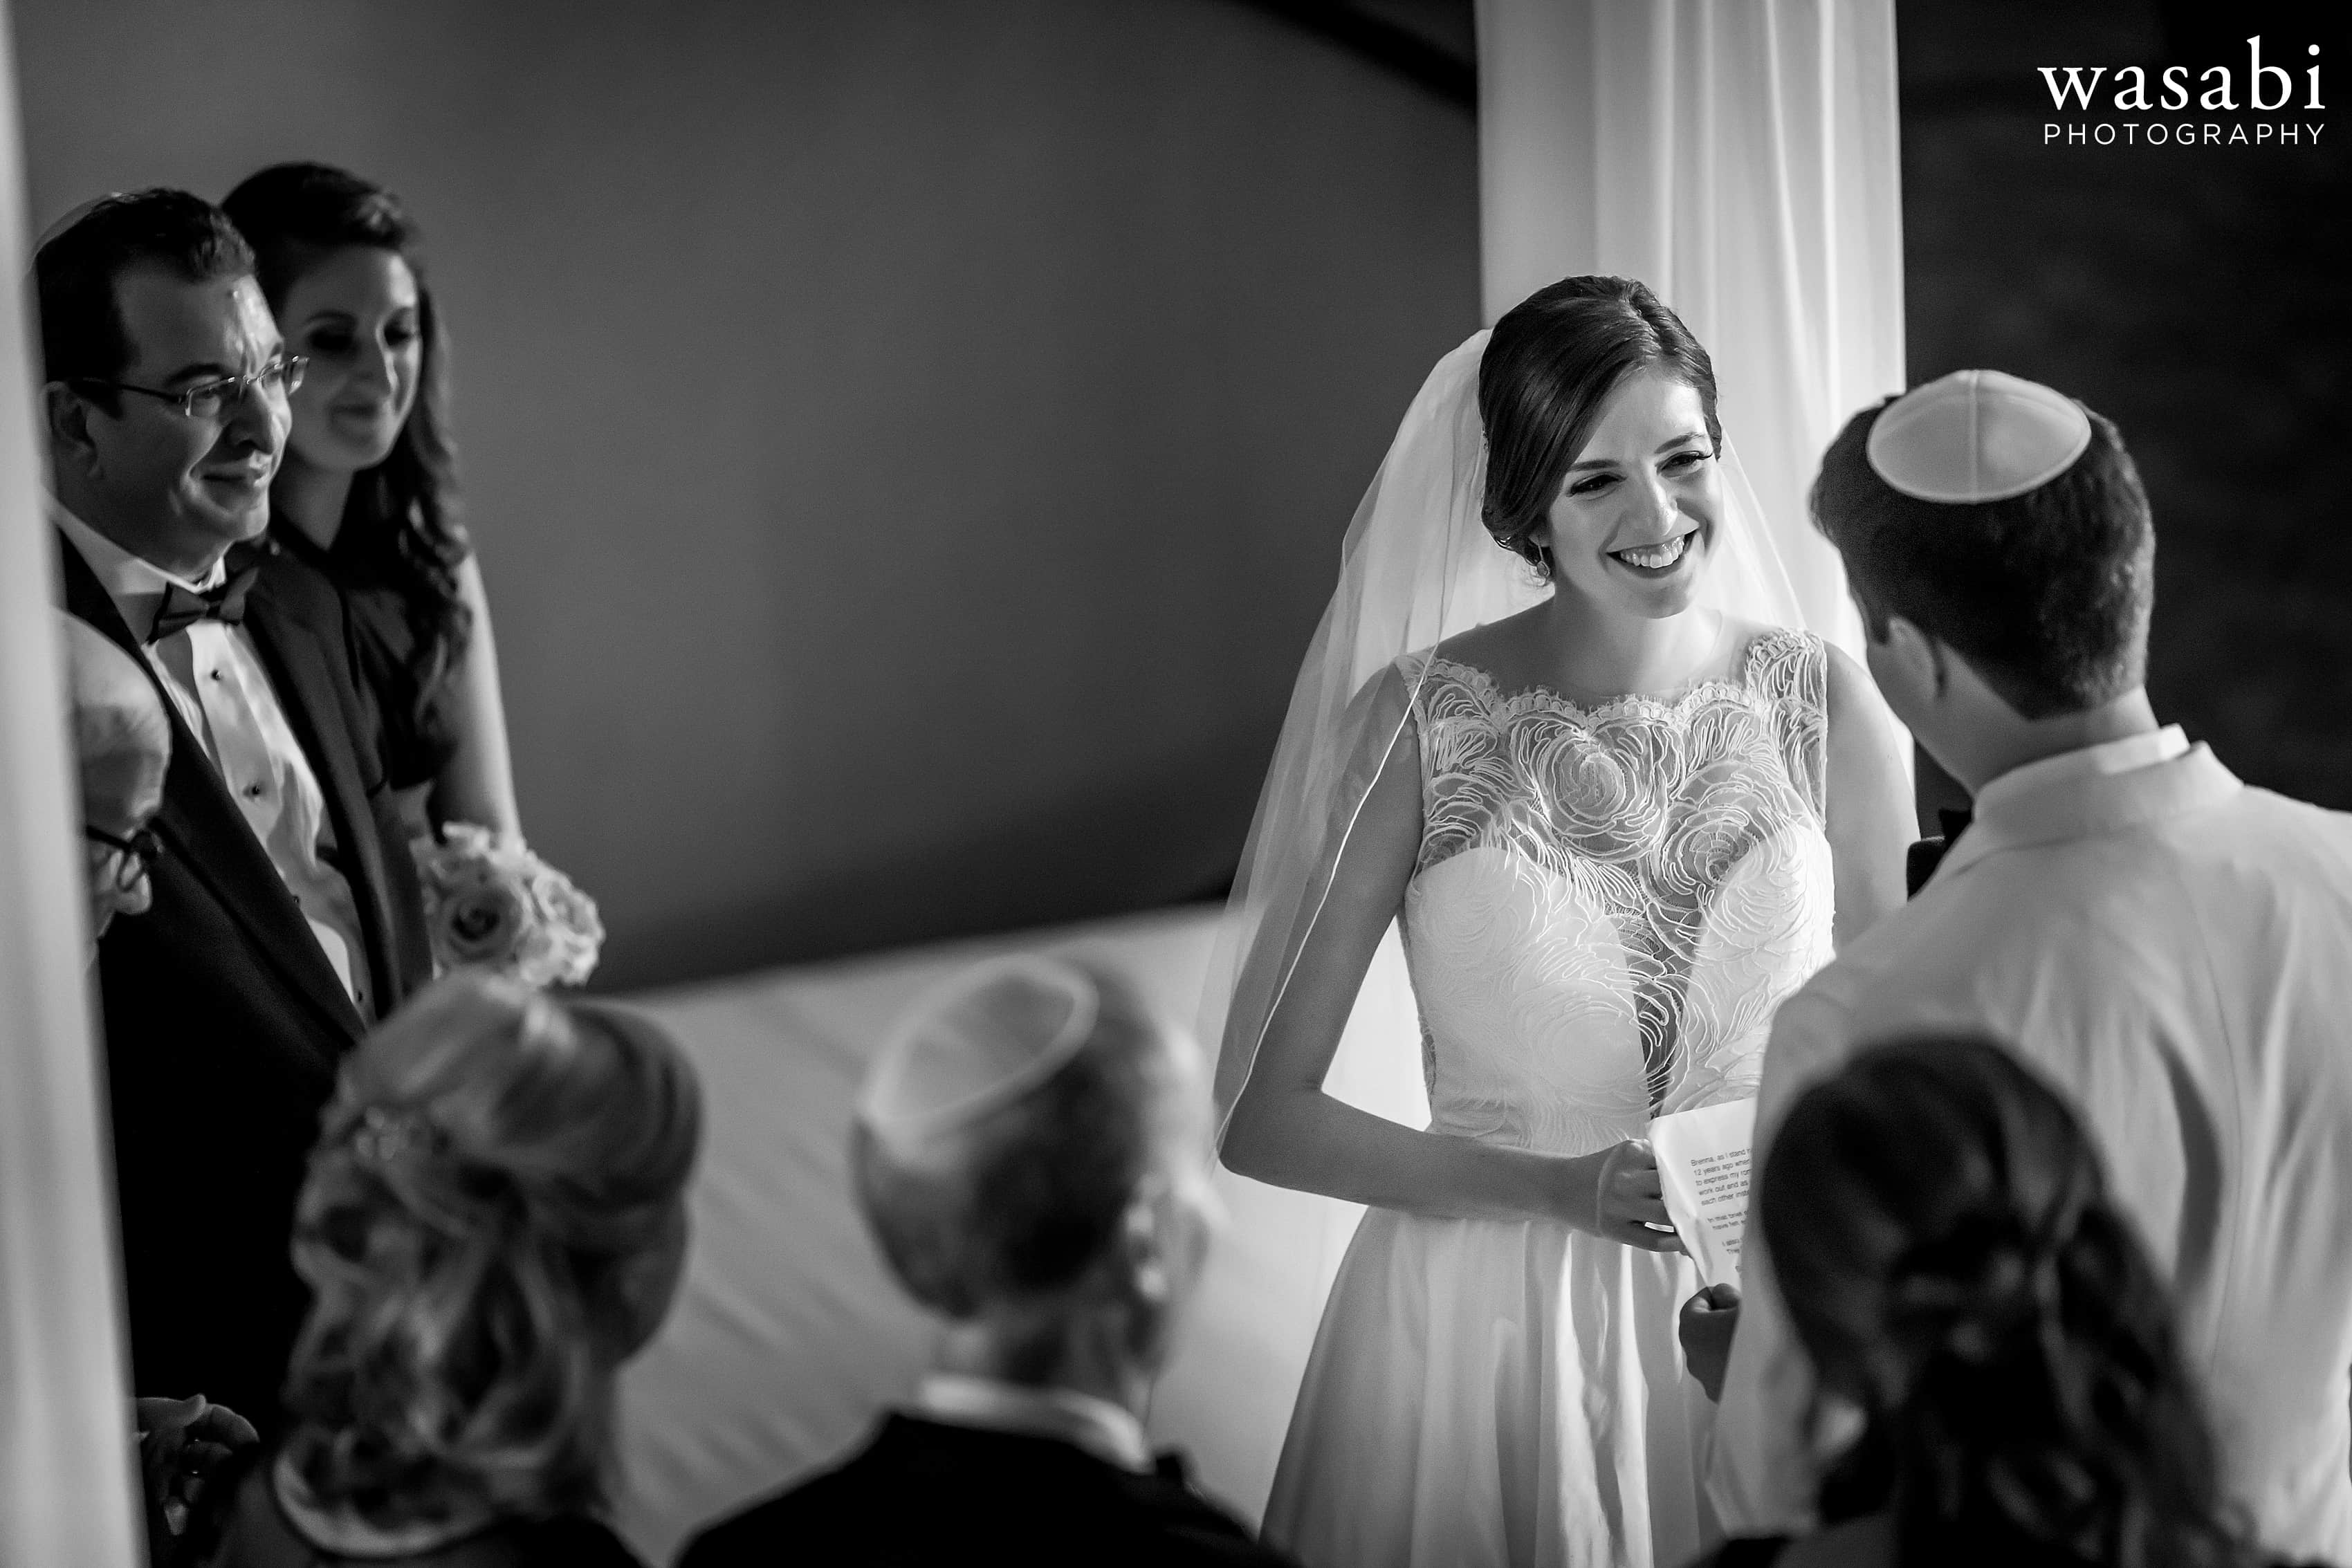 bride smiles at groom during Jewish wedding ceremony at InterContinental Chicago Magnificent Mile Hotel